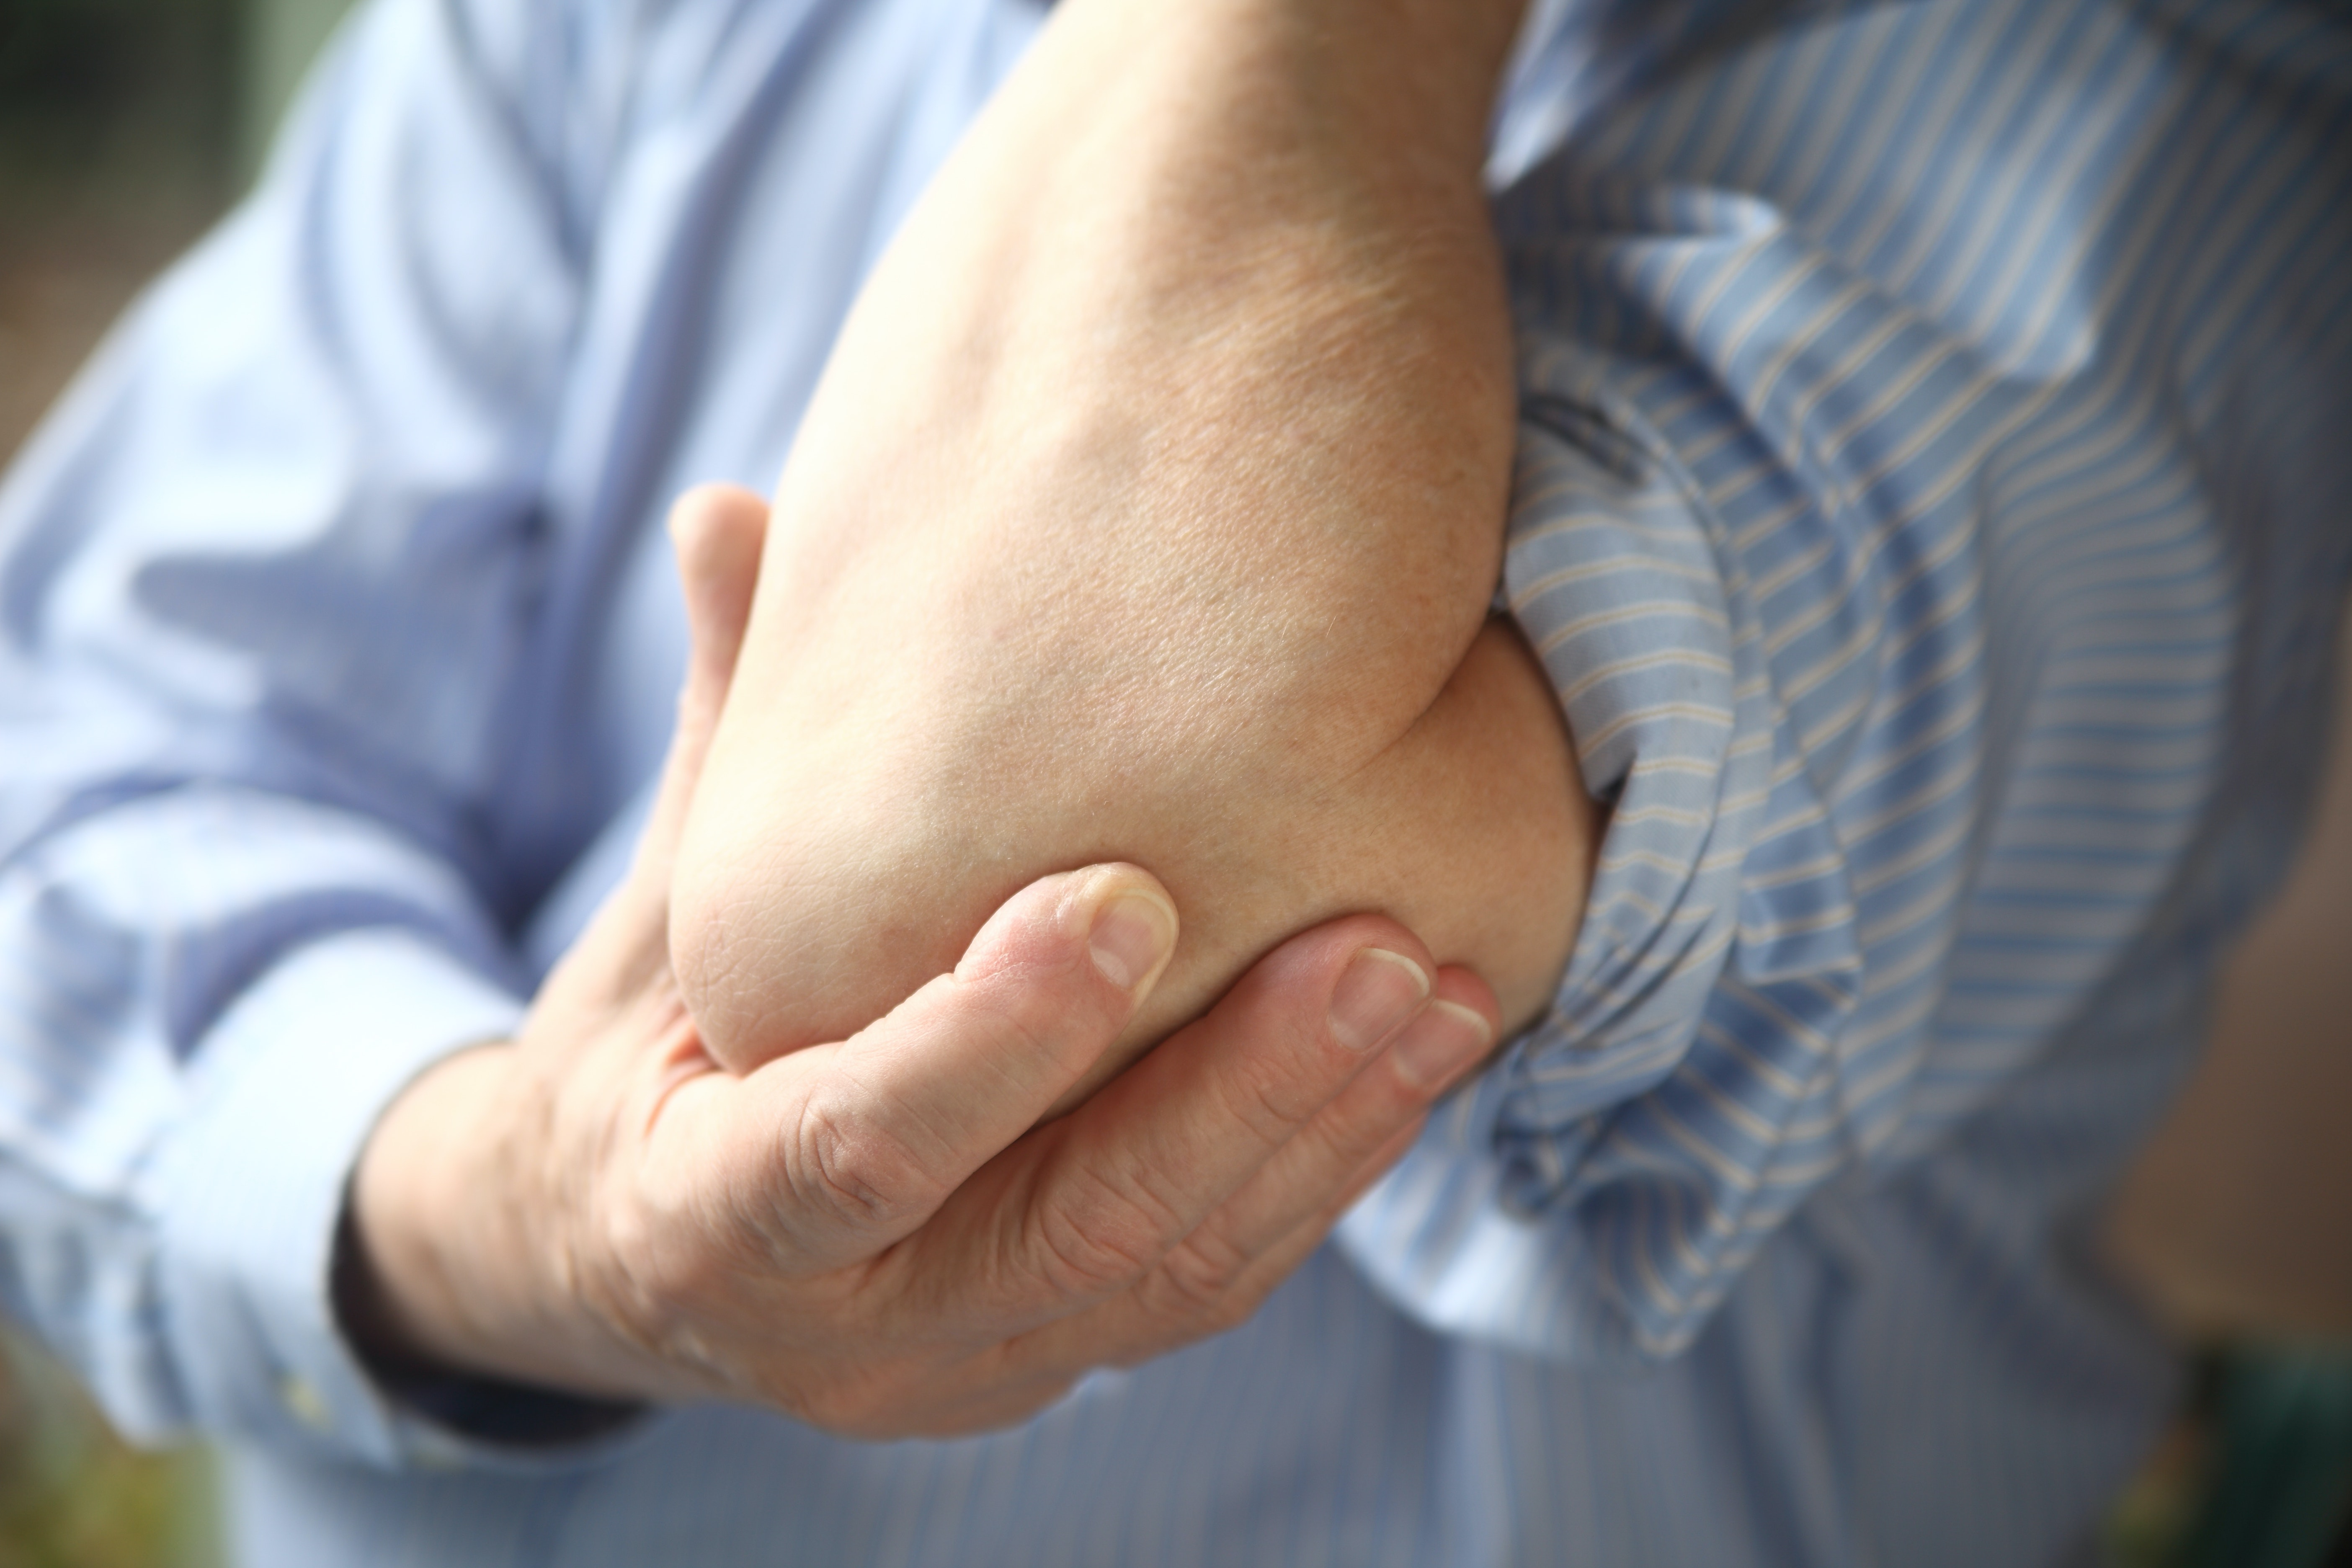 An image depicting a person suffering from elbow popping symptoms